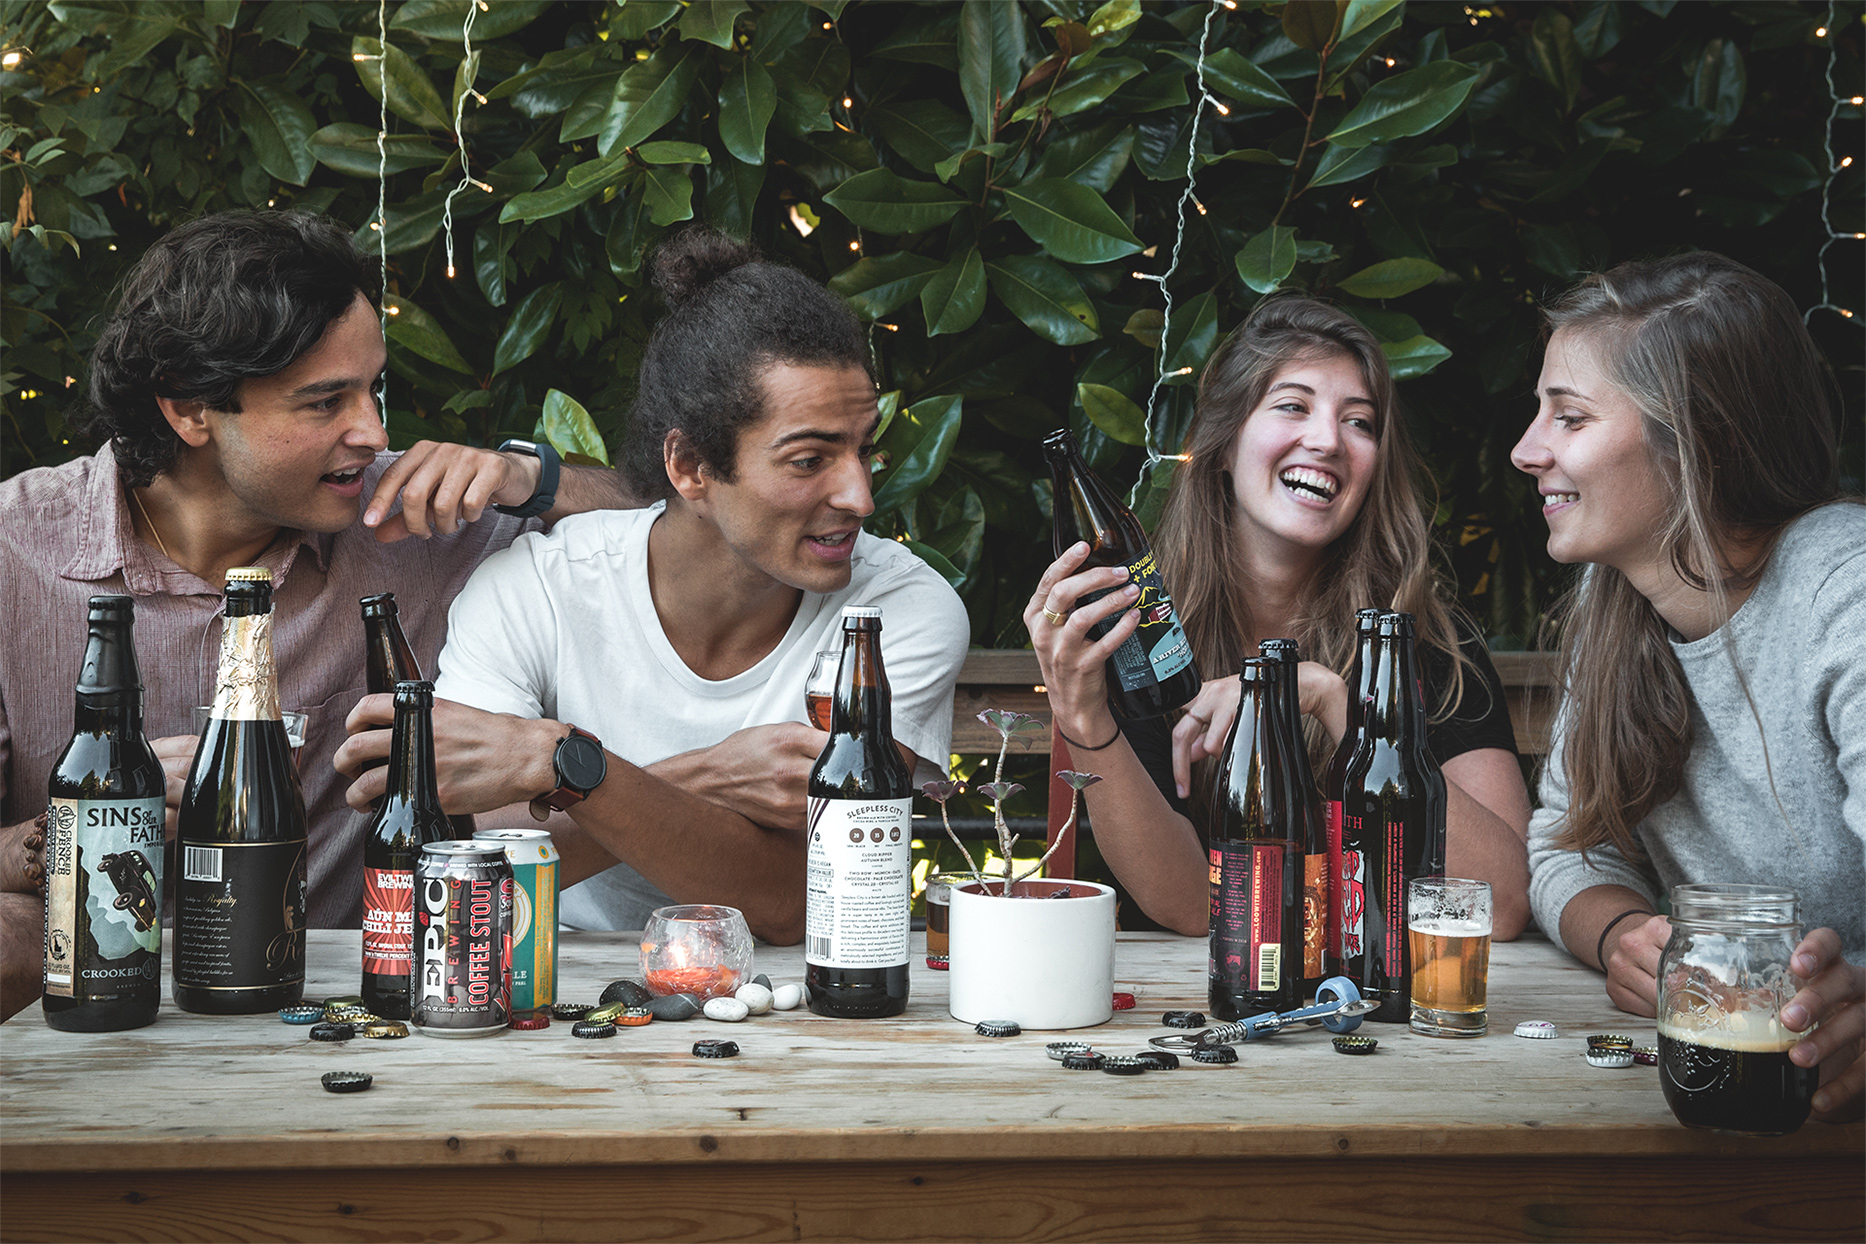 group of people sitting around a table drinking tavour beer